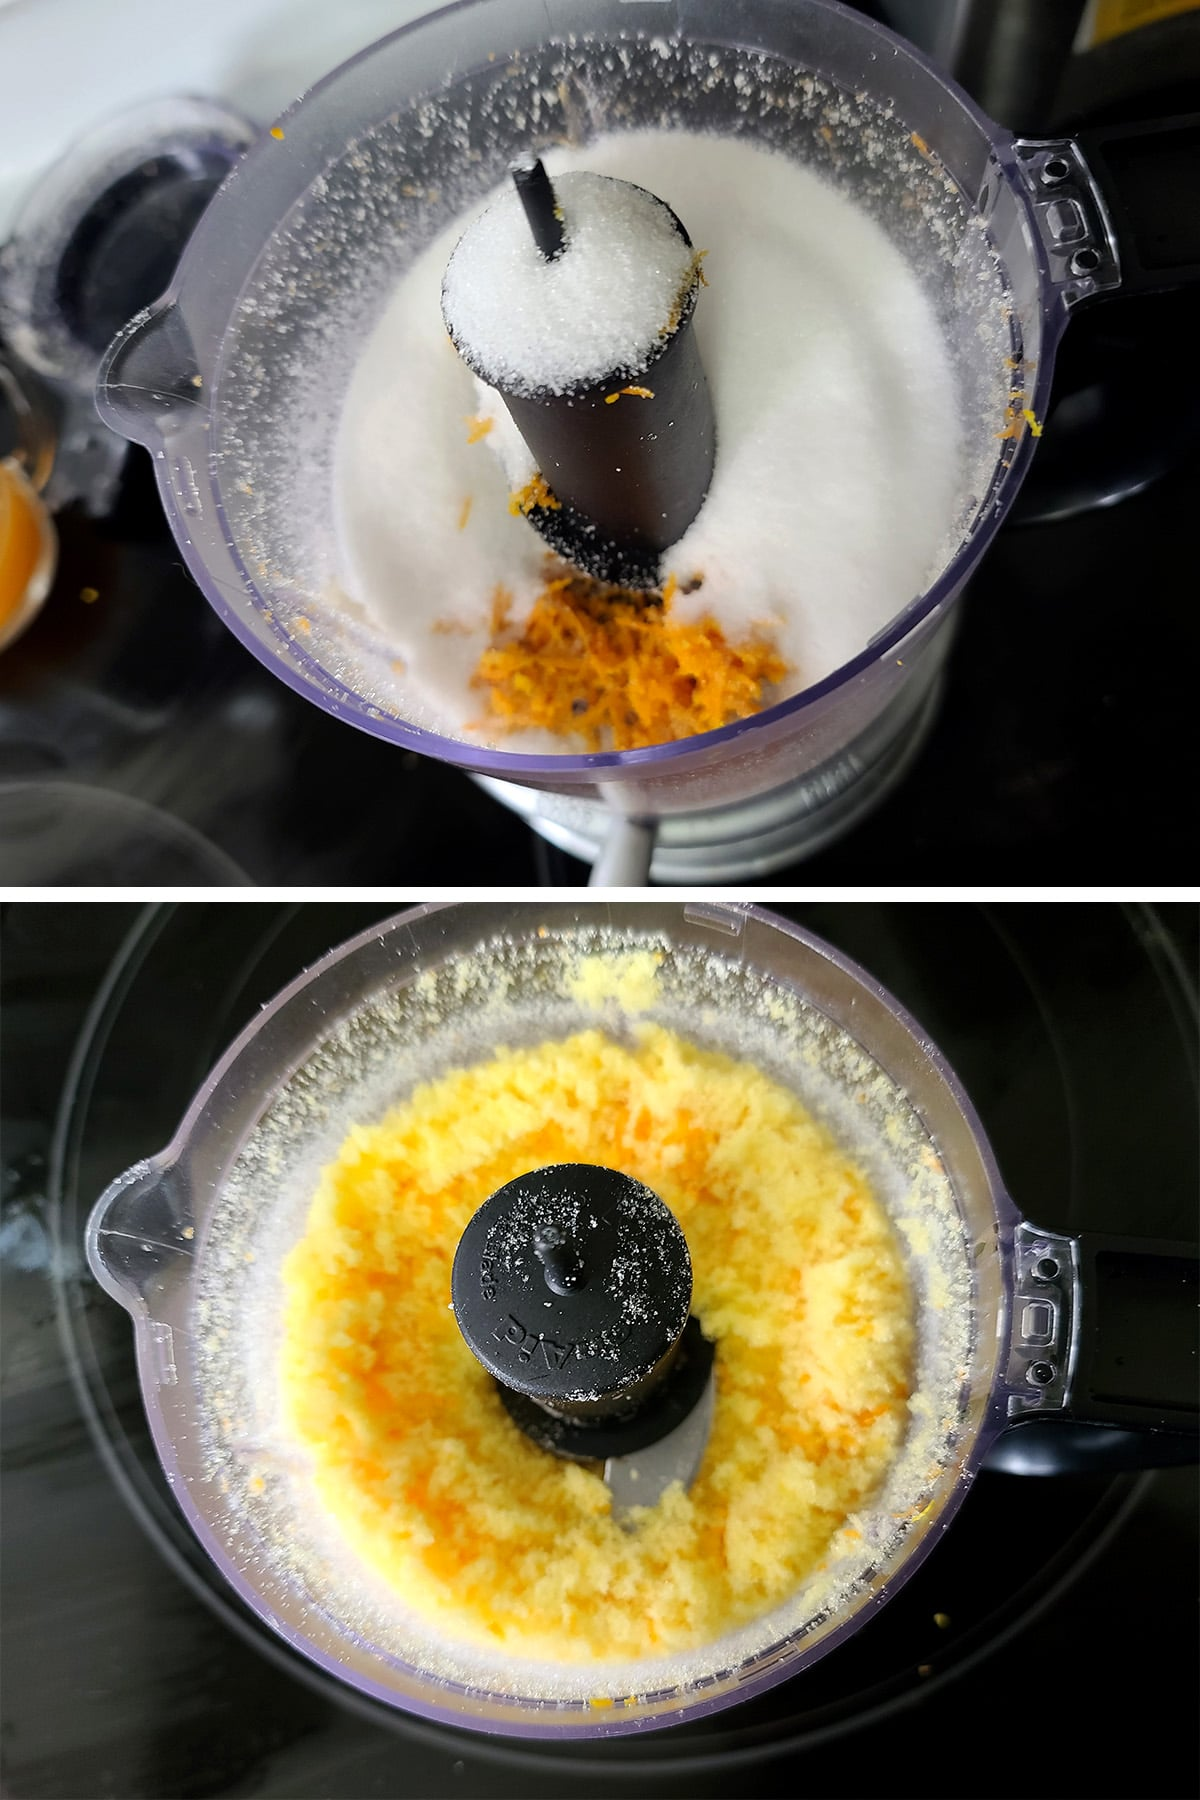 Orange zest and sugar being processed together in a mini food processor.